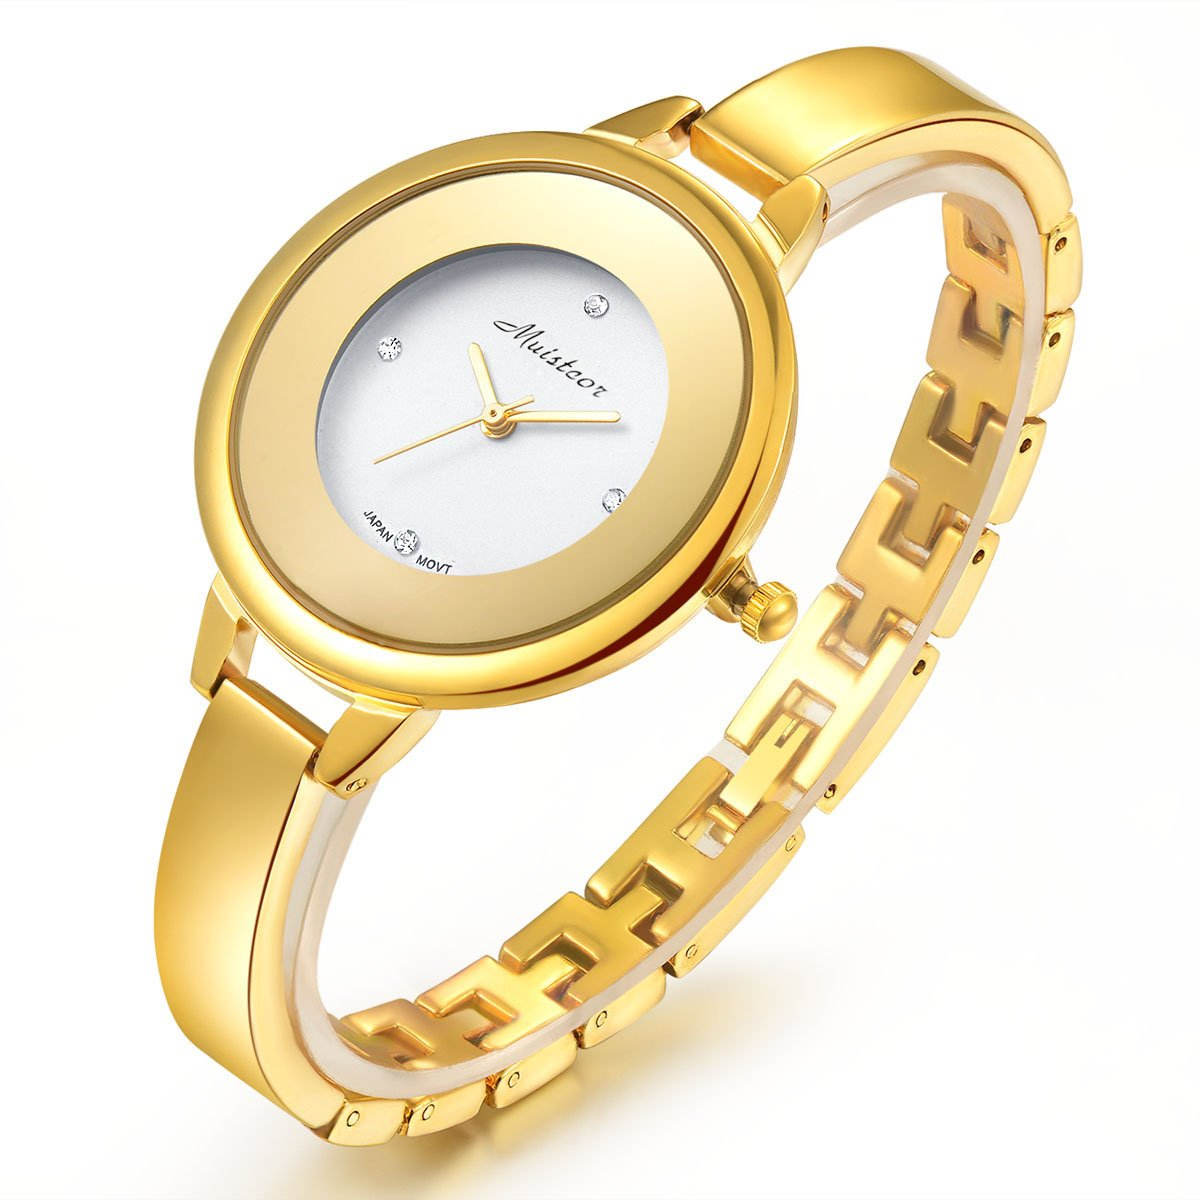 Chrysansmile Stainless Steel Wrist Watch for Women Luxury Gold-Tone Watch Analog Quartz Ladies Watches